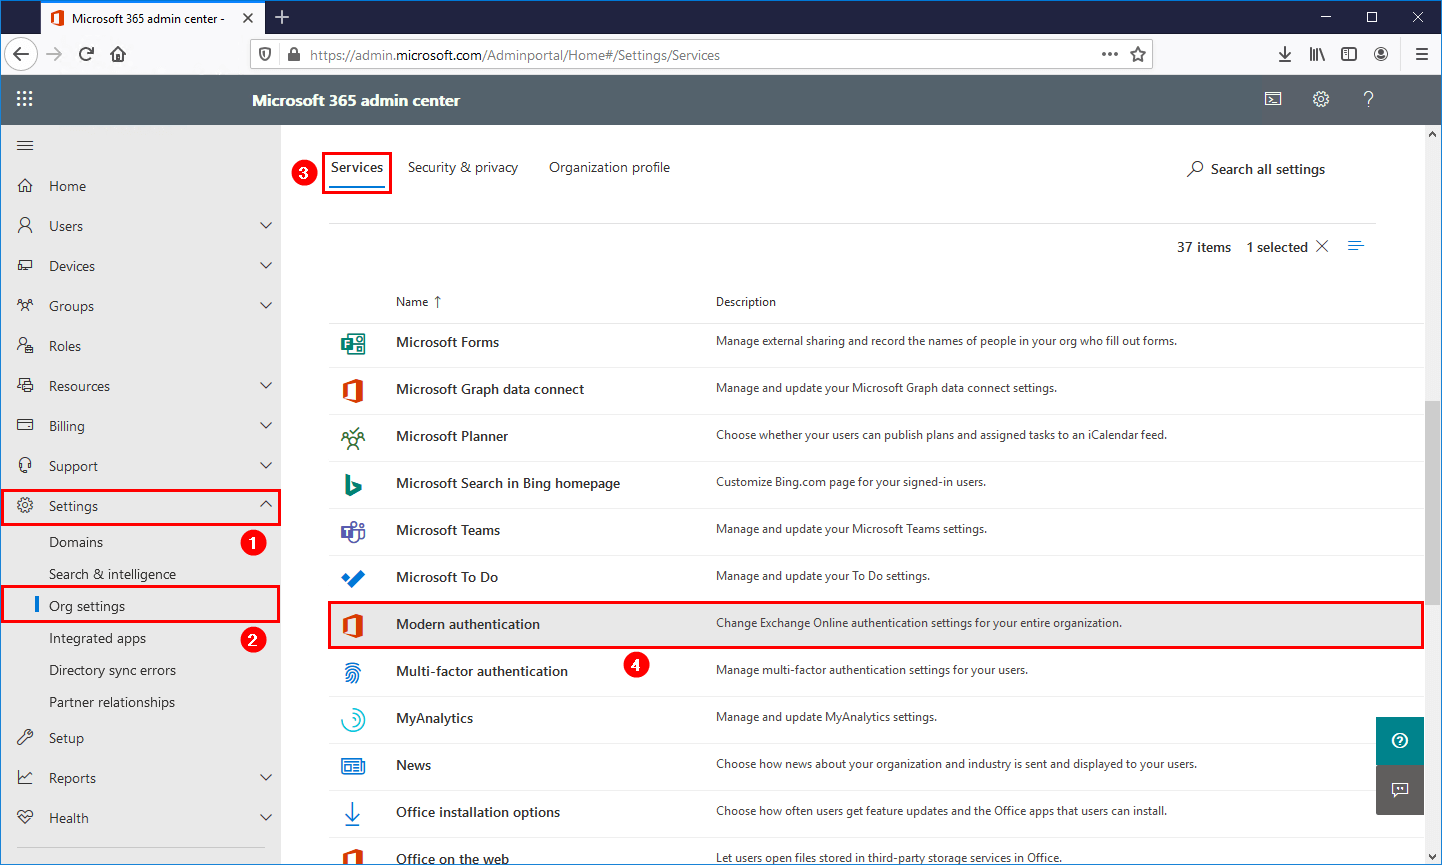 Outlook prompts for password after migration to Office 365 modern authentication